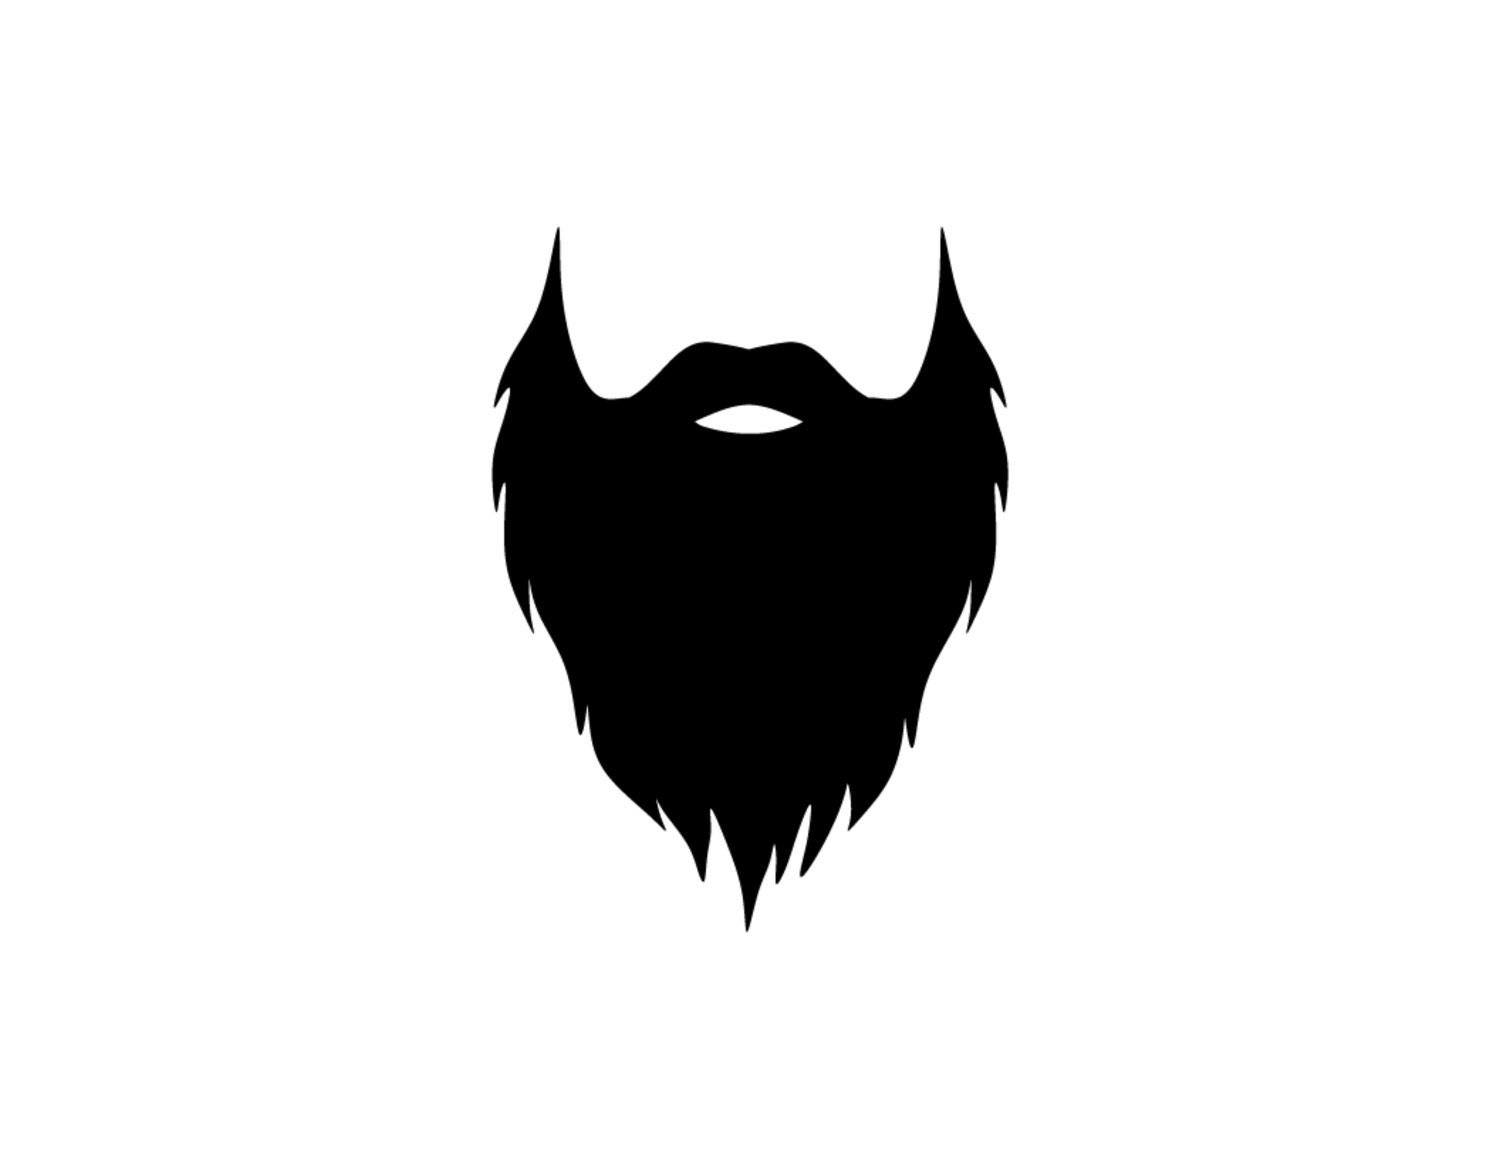 Beard Decal Vinyl Sticker Vinyl Decal Beard Decal Beard